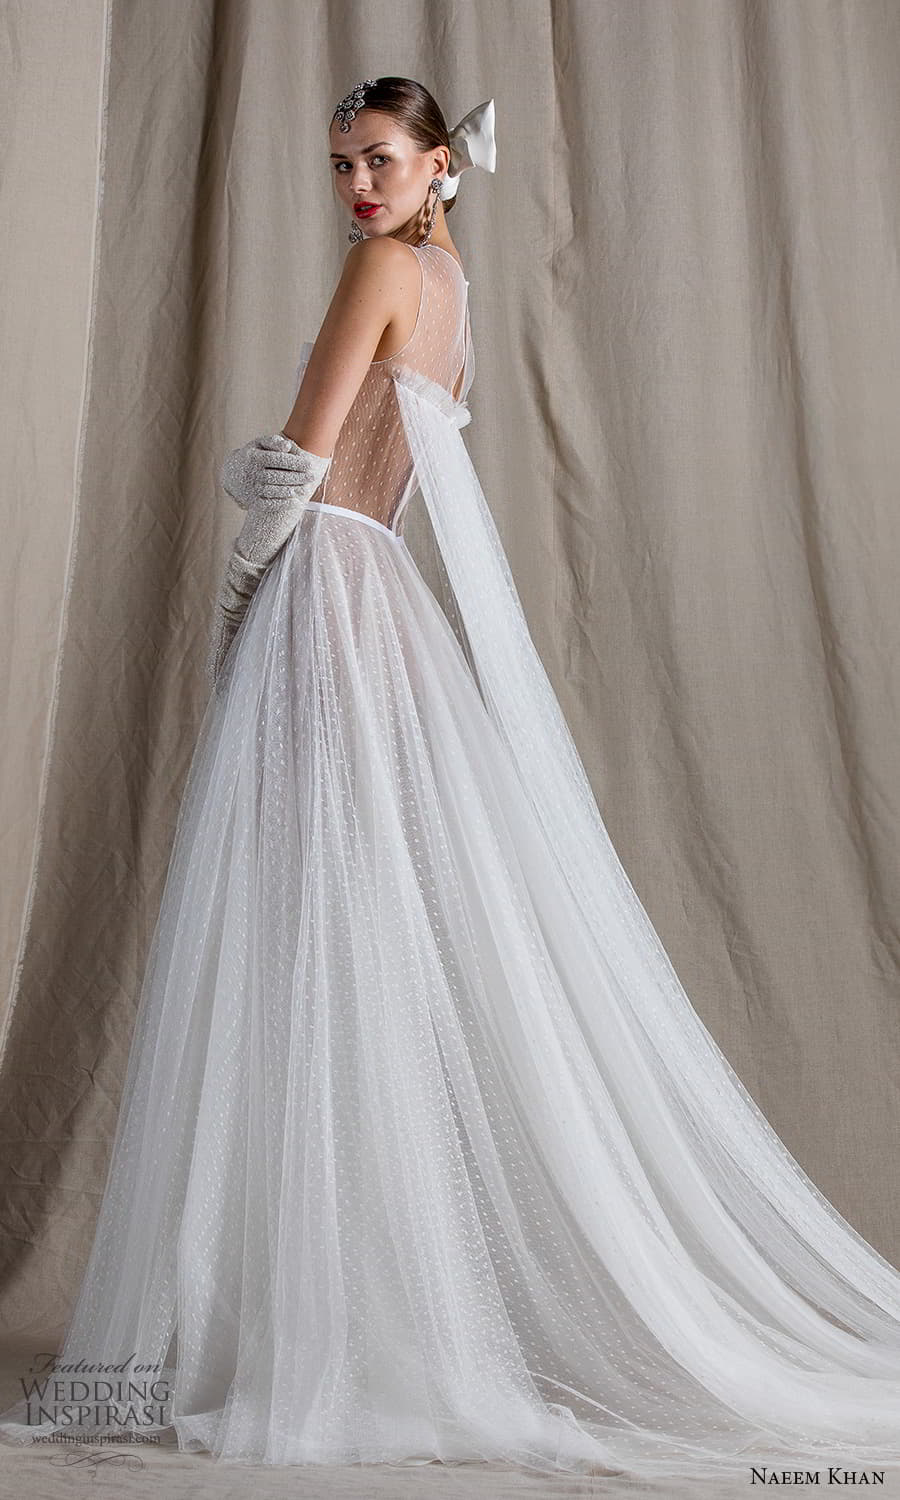 naeem khan spring 2022 bridal sleeveless sheer thick straps jewel neckline ruched bodice tulle a line ball gown wedding dress chapel train (5) sv